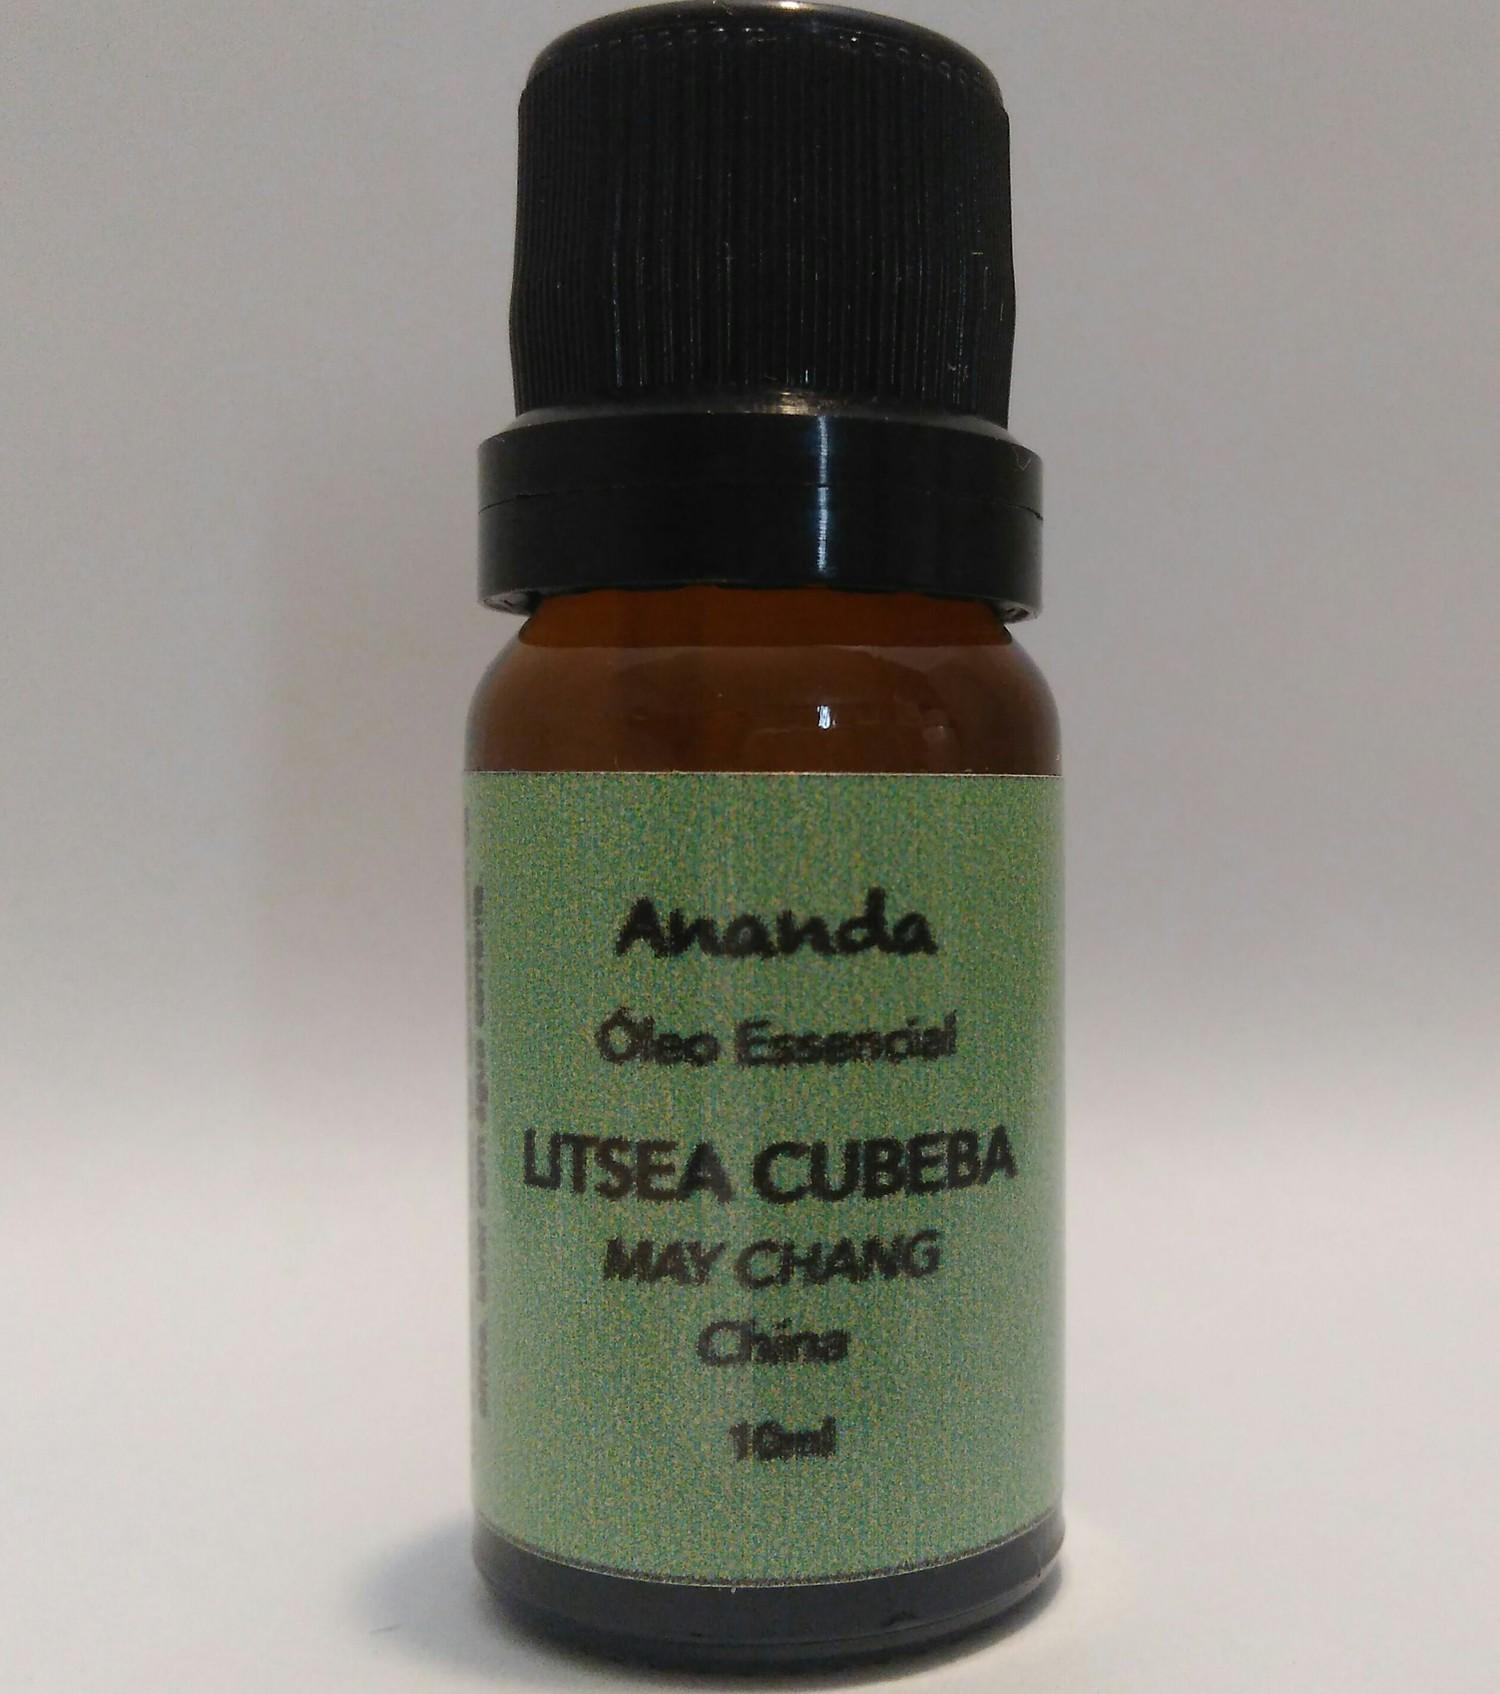 Óleo essencial de Litsea Cubeba (May Chang) 10ml